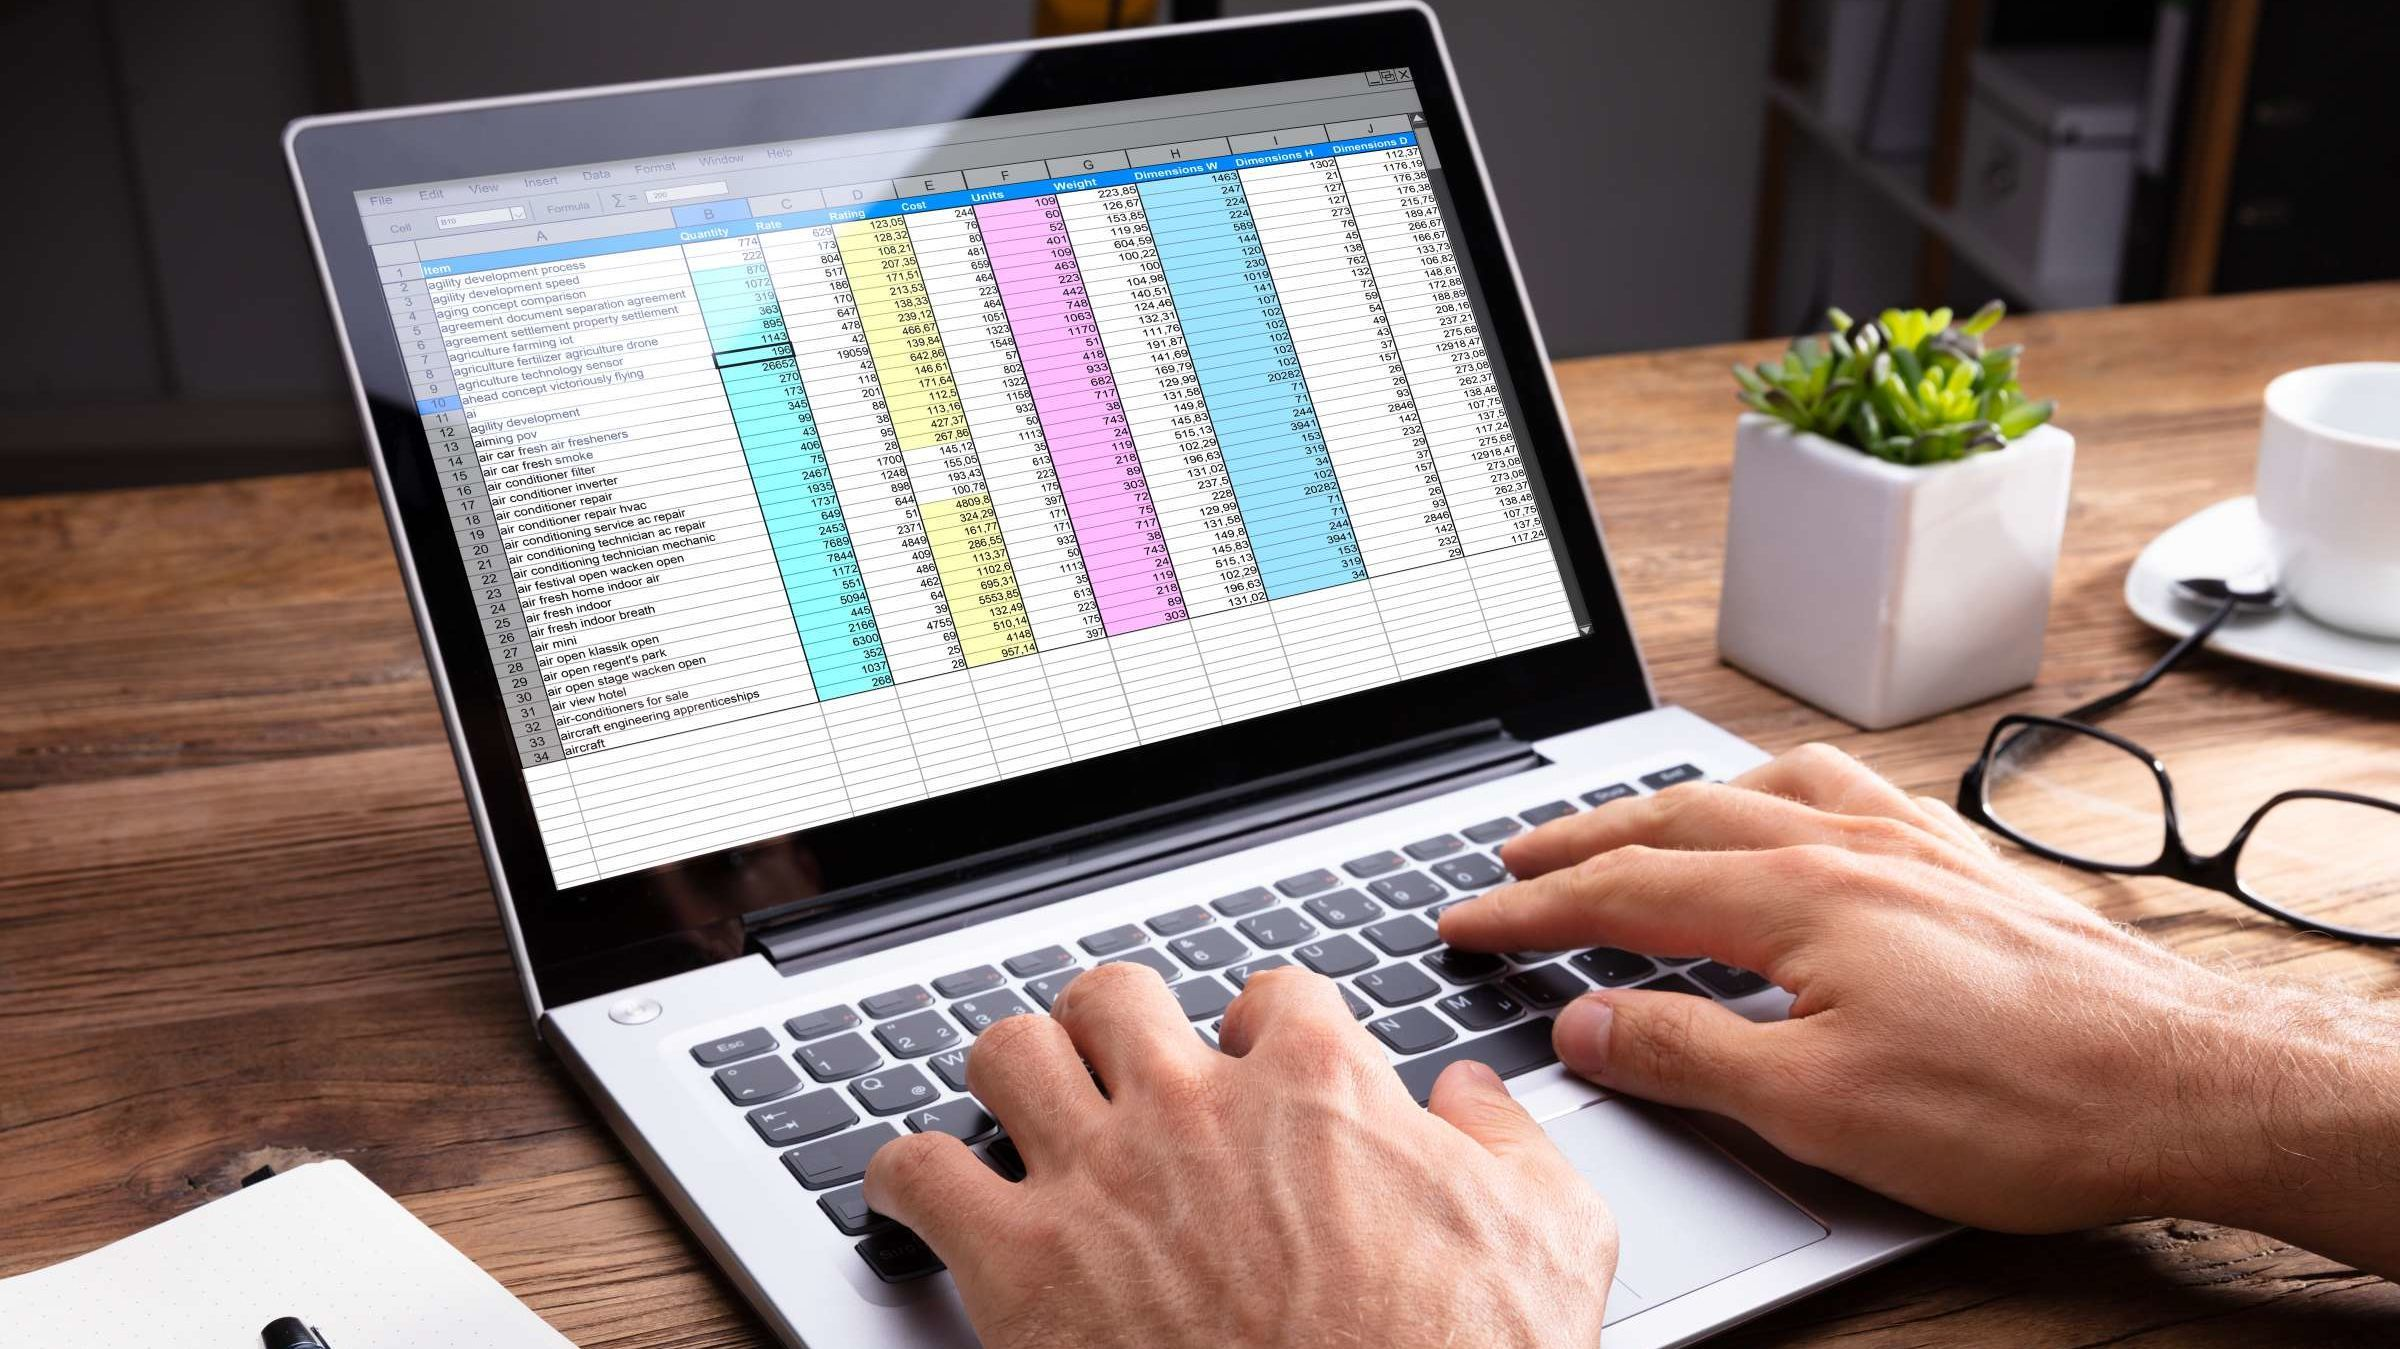 16 Microsoft Excel Shortcuts Everyone Should Know